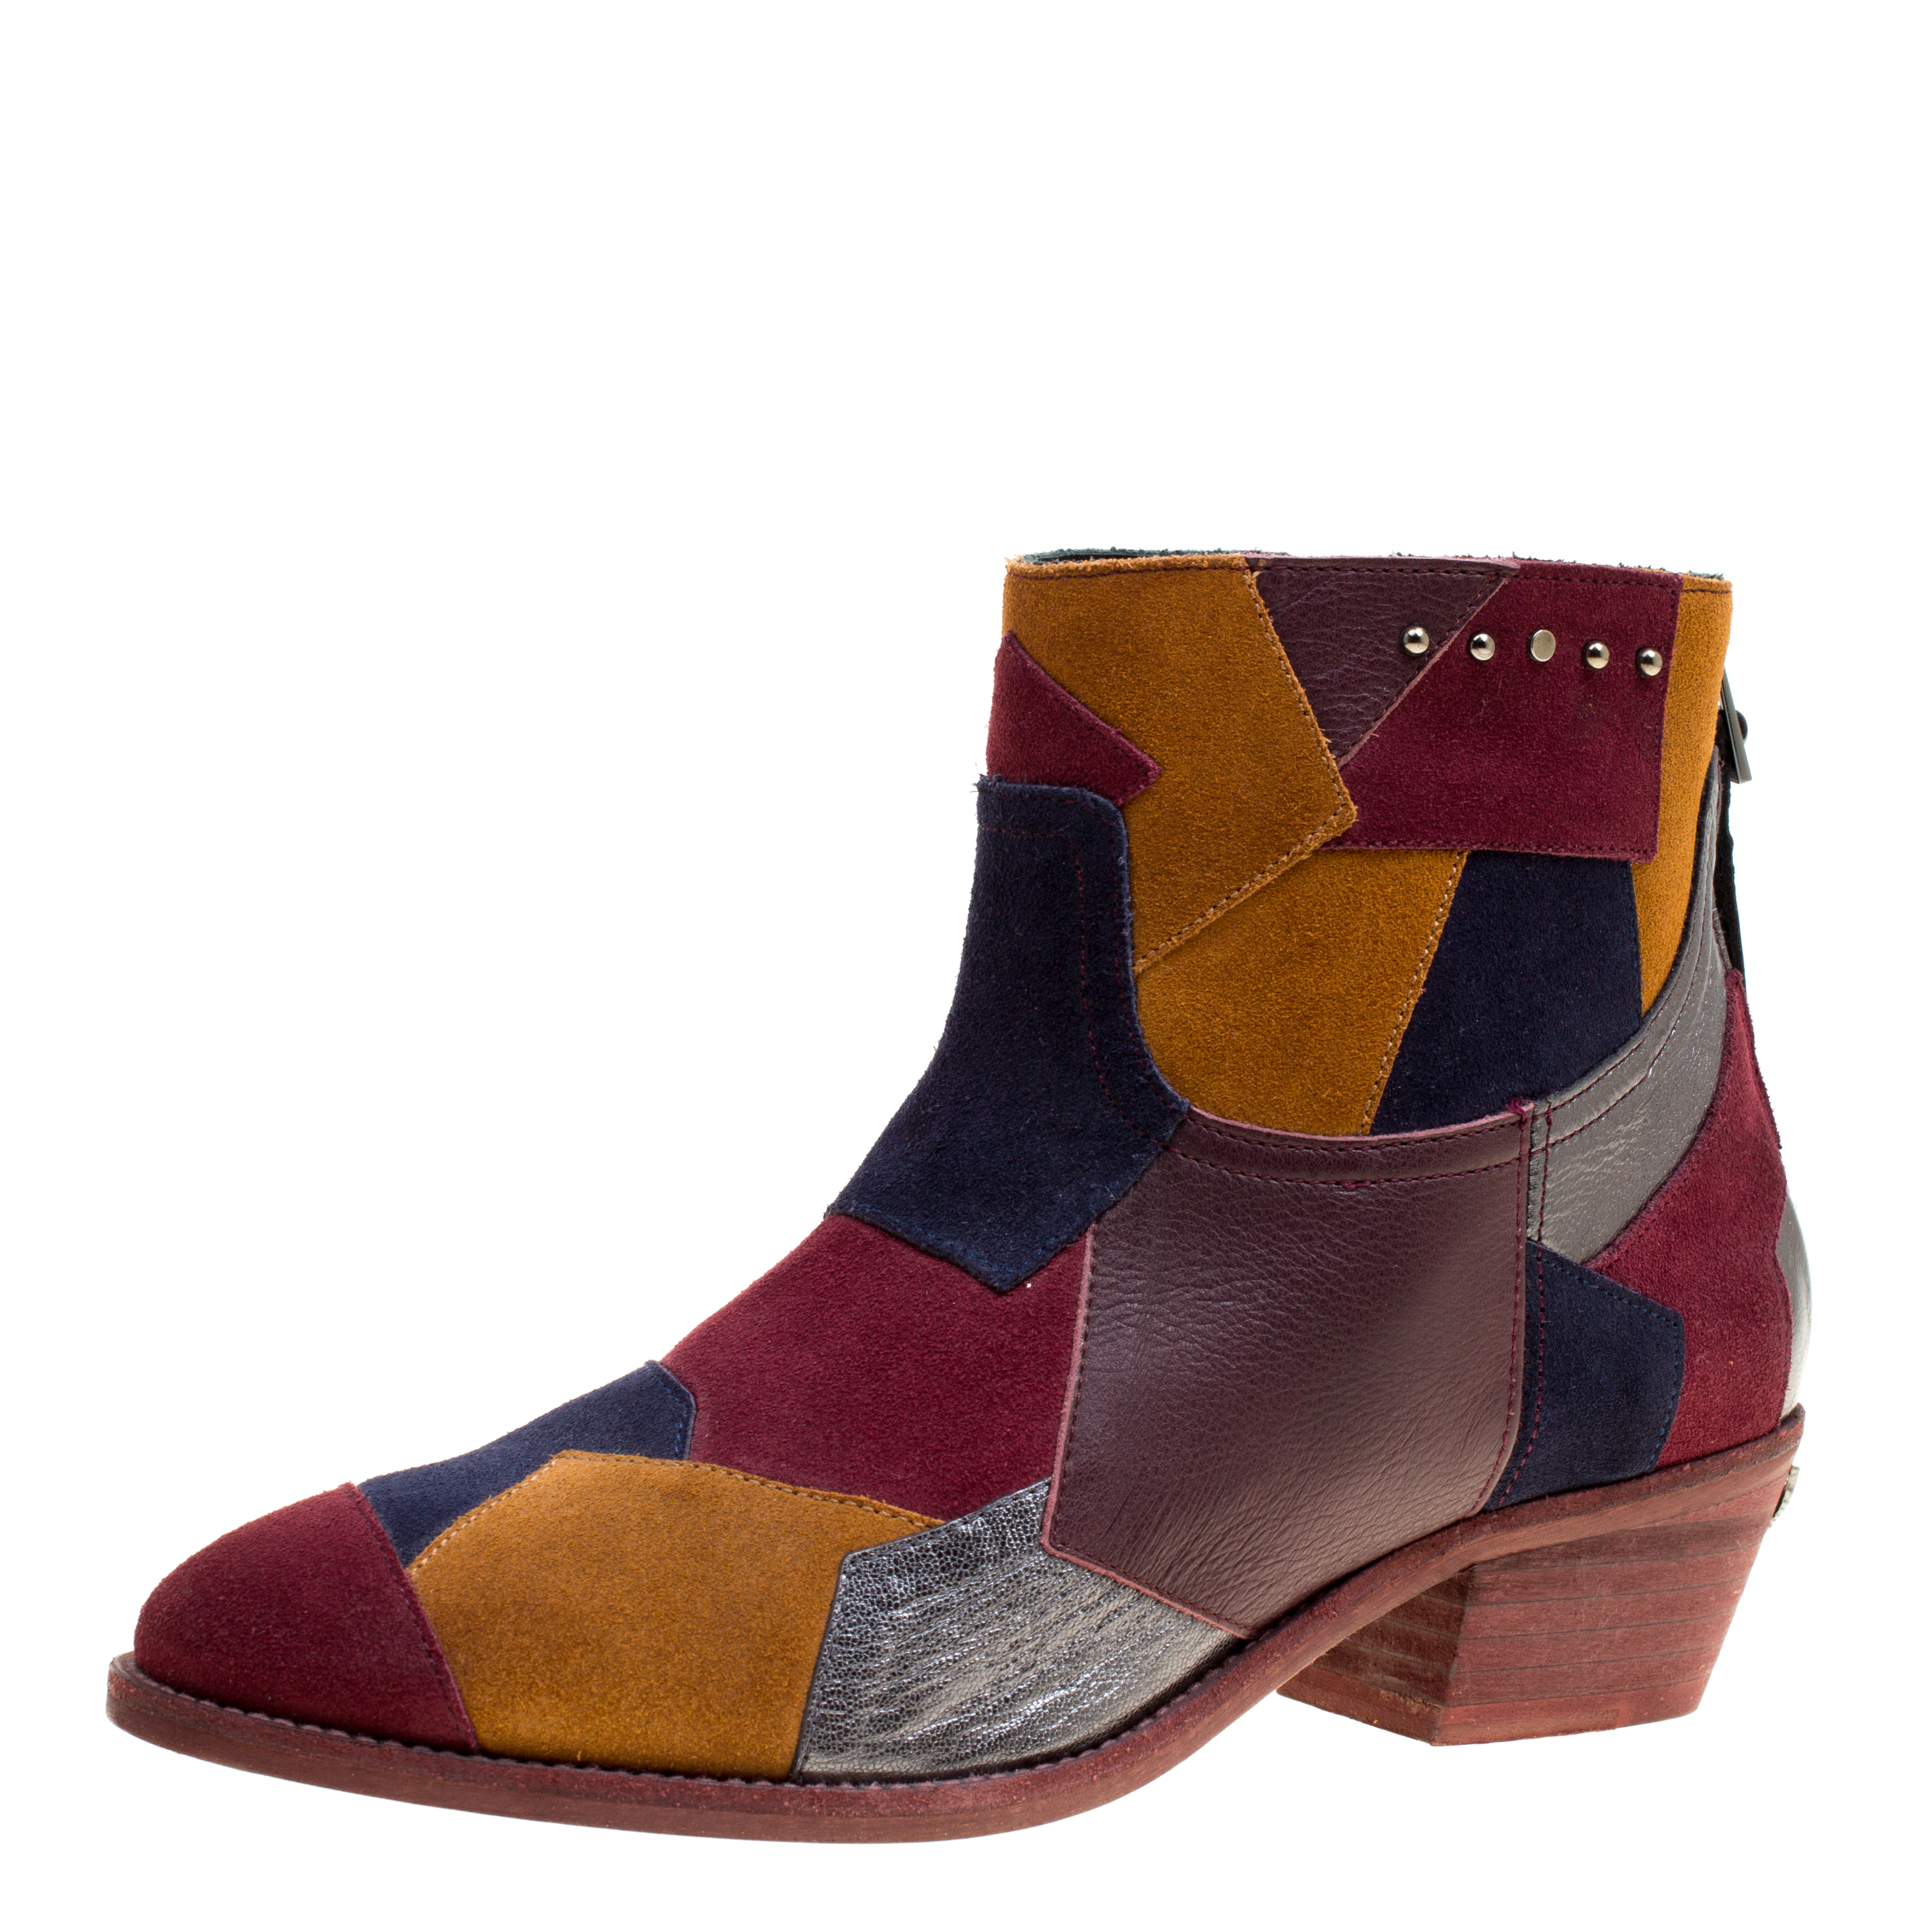 90e45a5a35c5ff Buy Zadig and Voltaire Multicolor Suede and Leather Patchwork Teddy ...